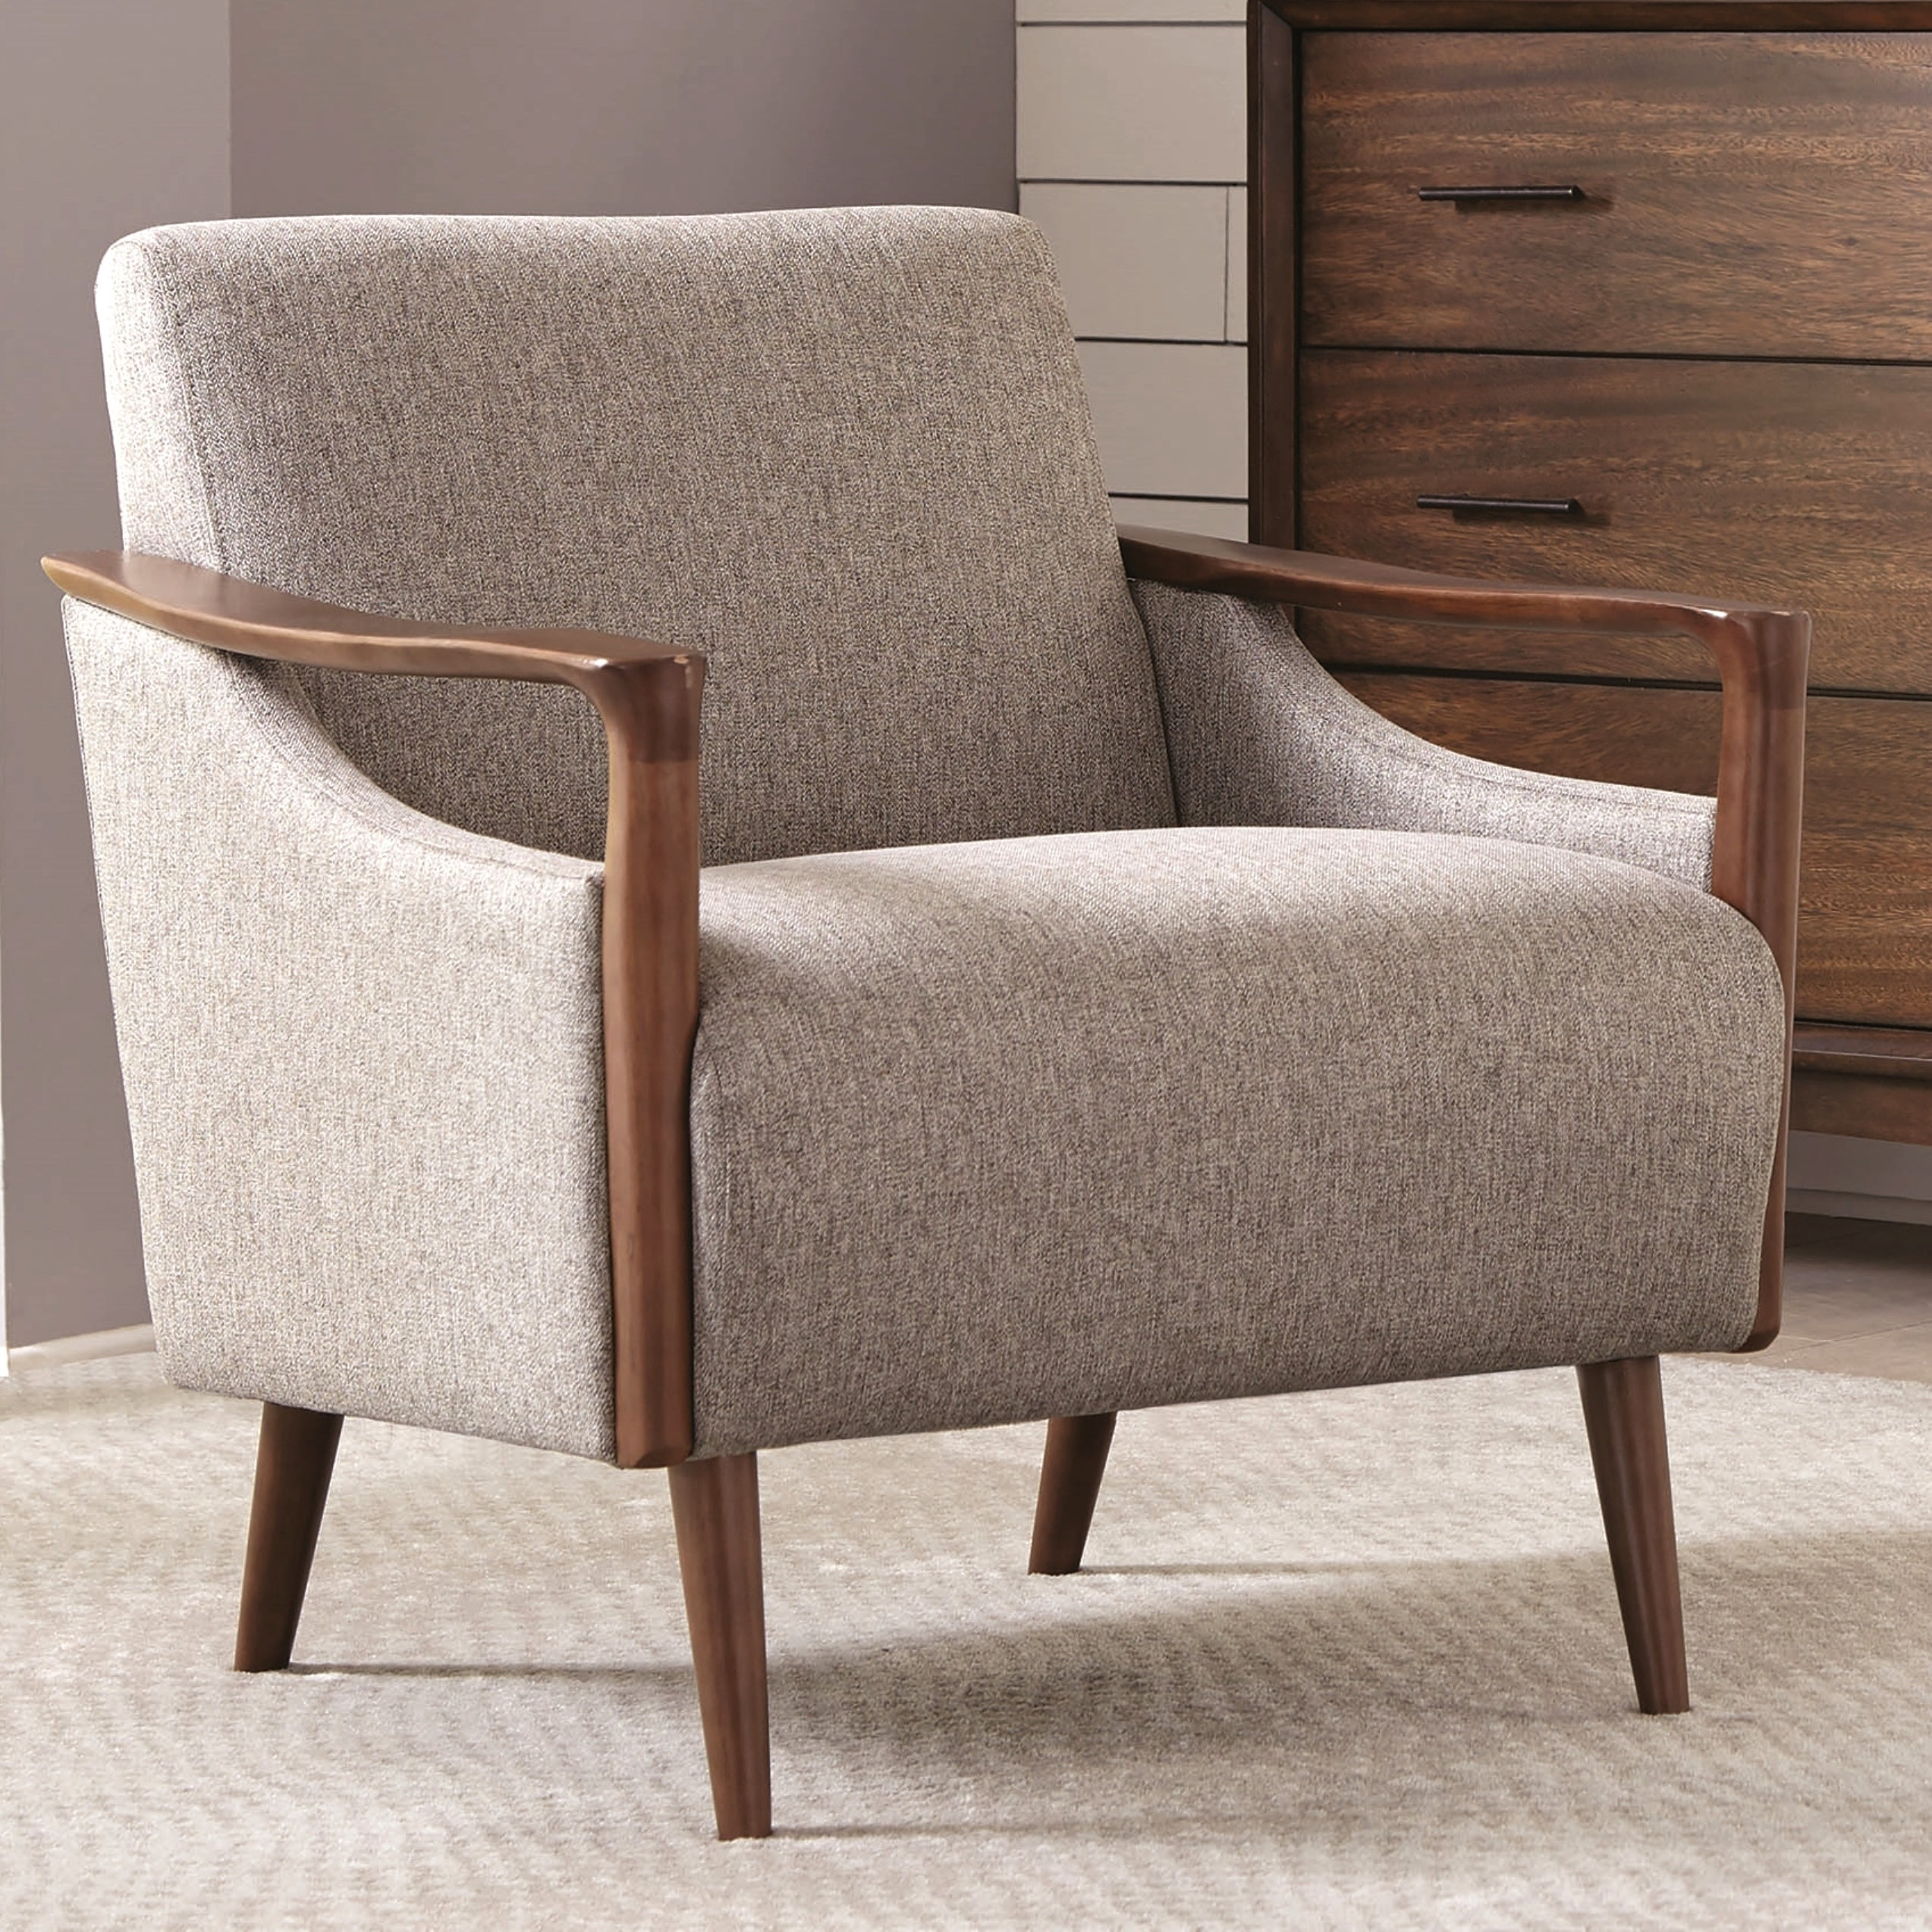 Details about mid century modern design living room accent chair